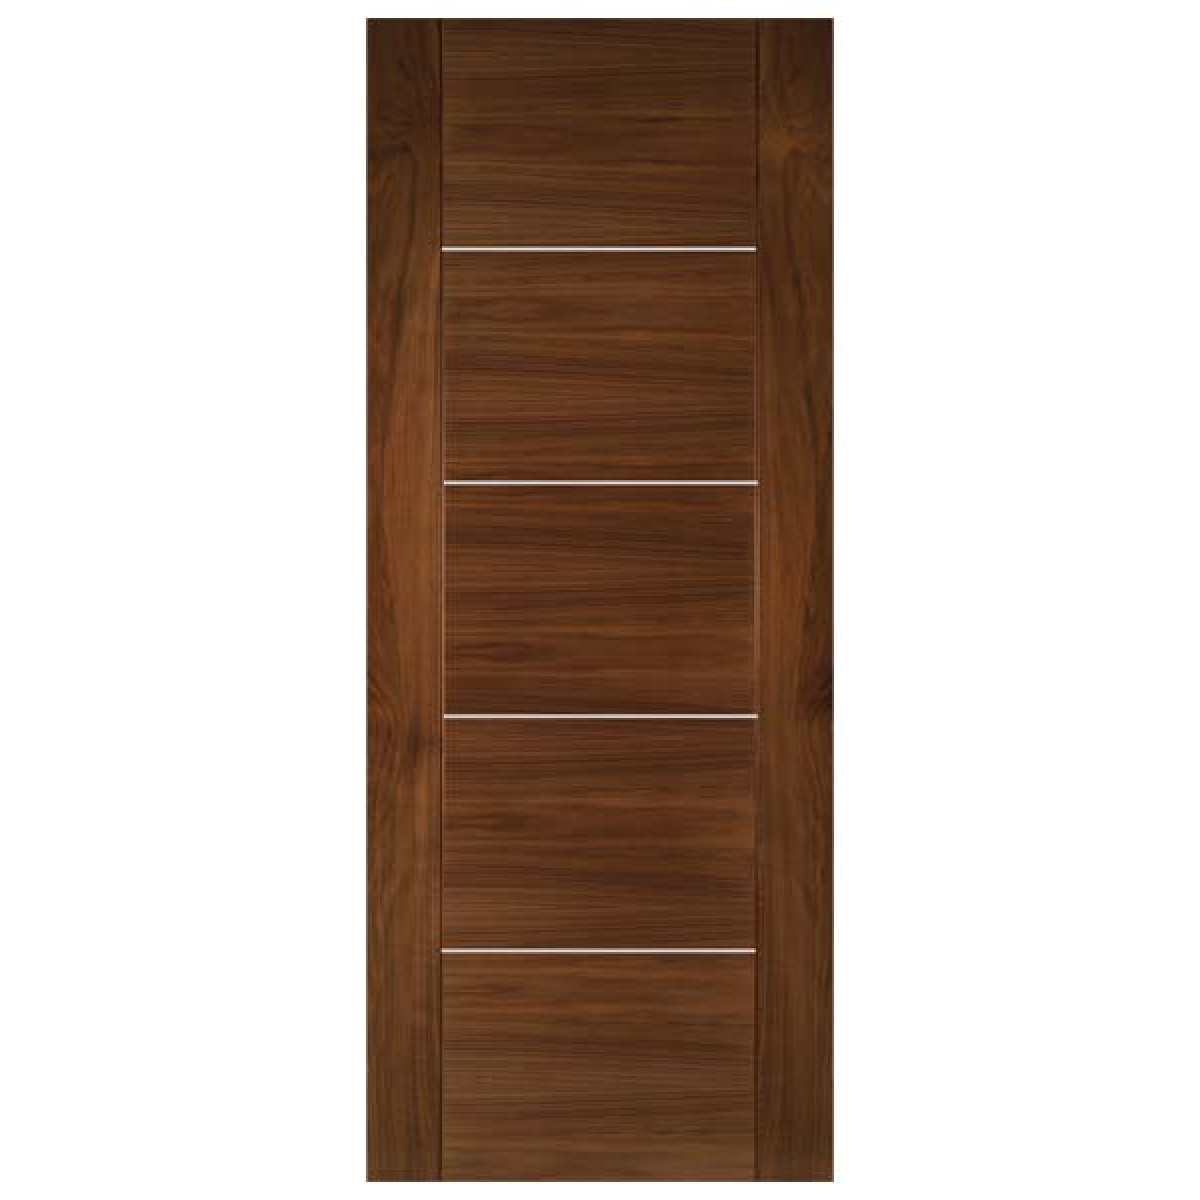 valencia walnut flat websters Image by Websters Timber